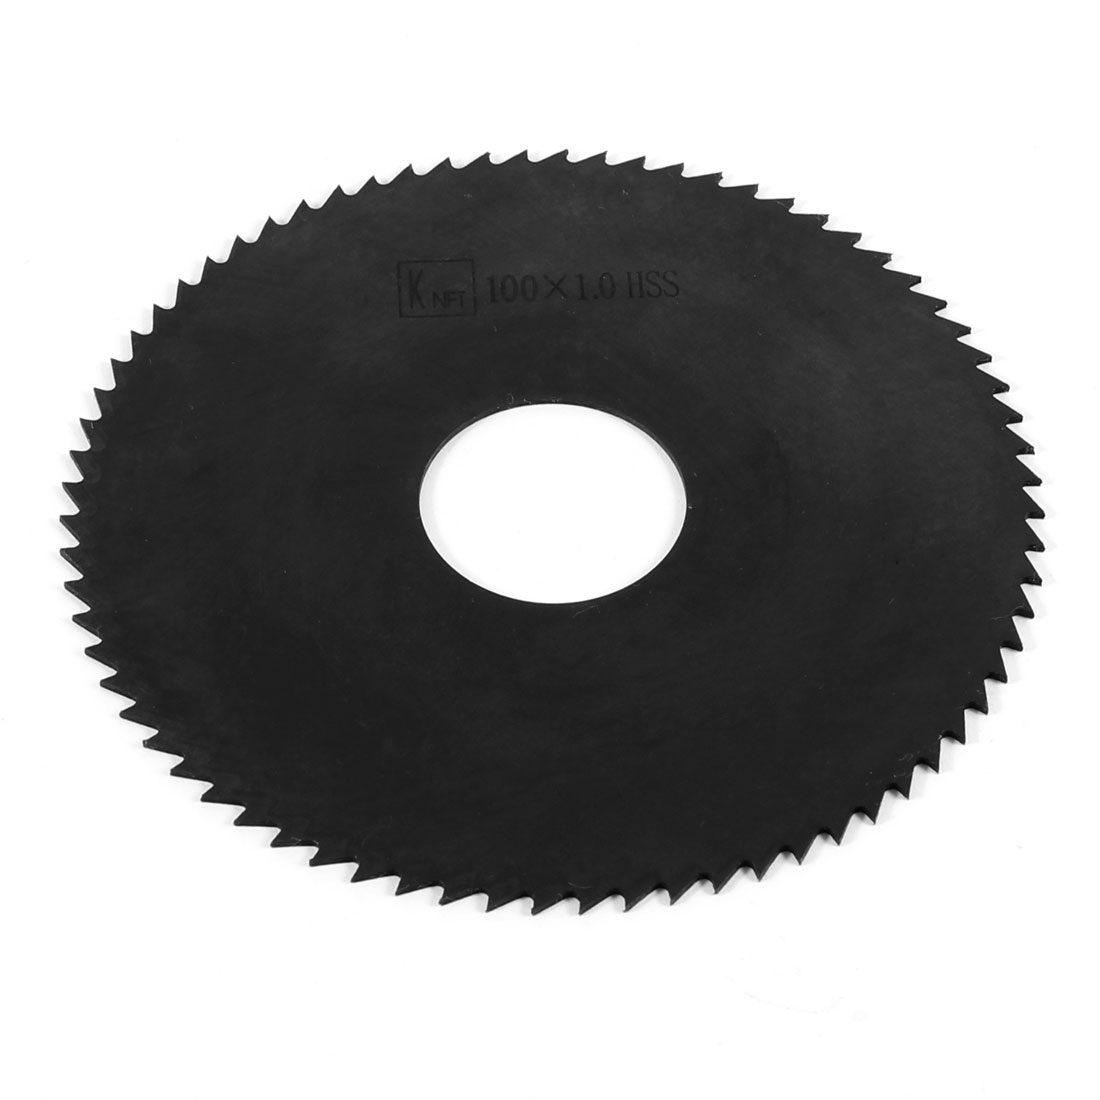 22mm-Arbor-Hole-Dia-1mm-Thick-72-Teeth-HSS-Circular-Slitting-Saw